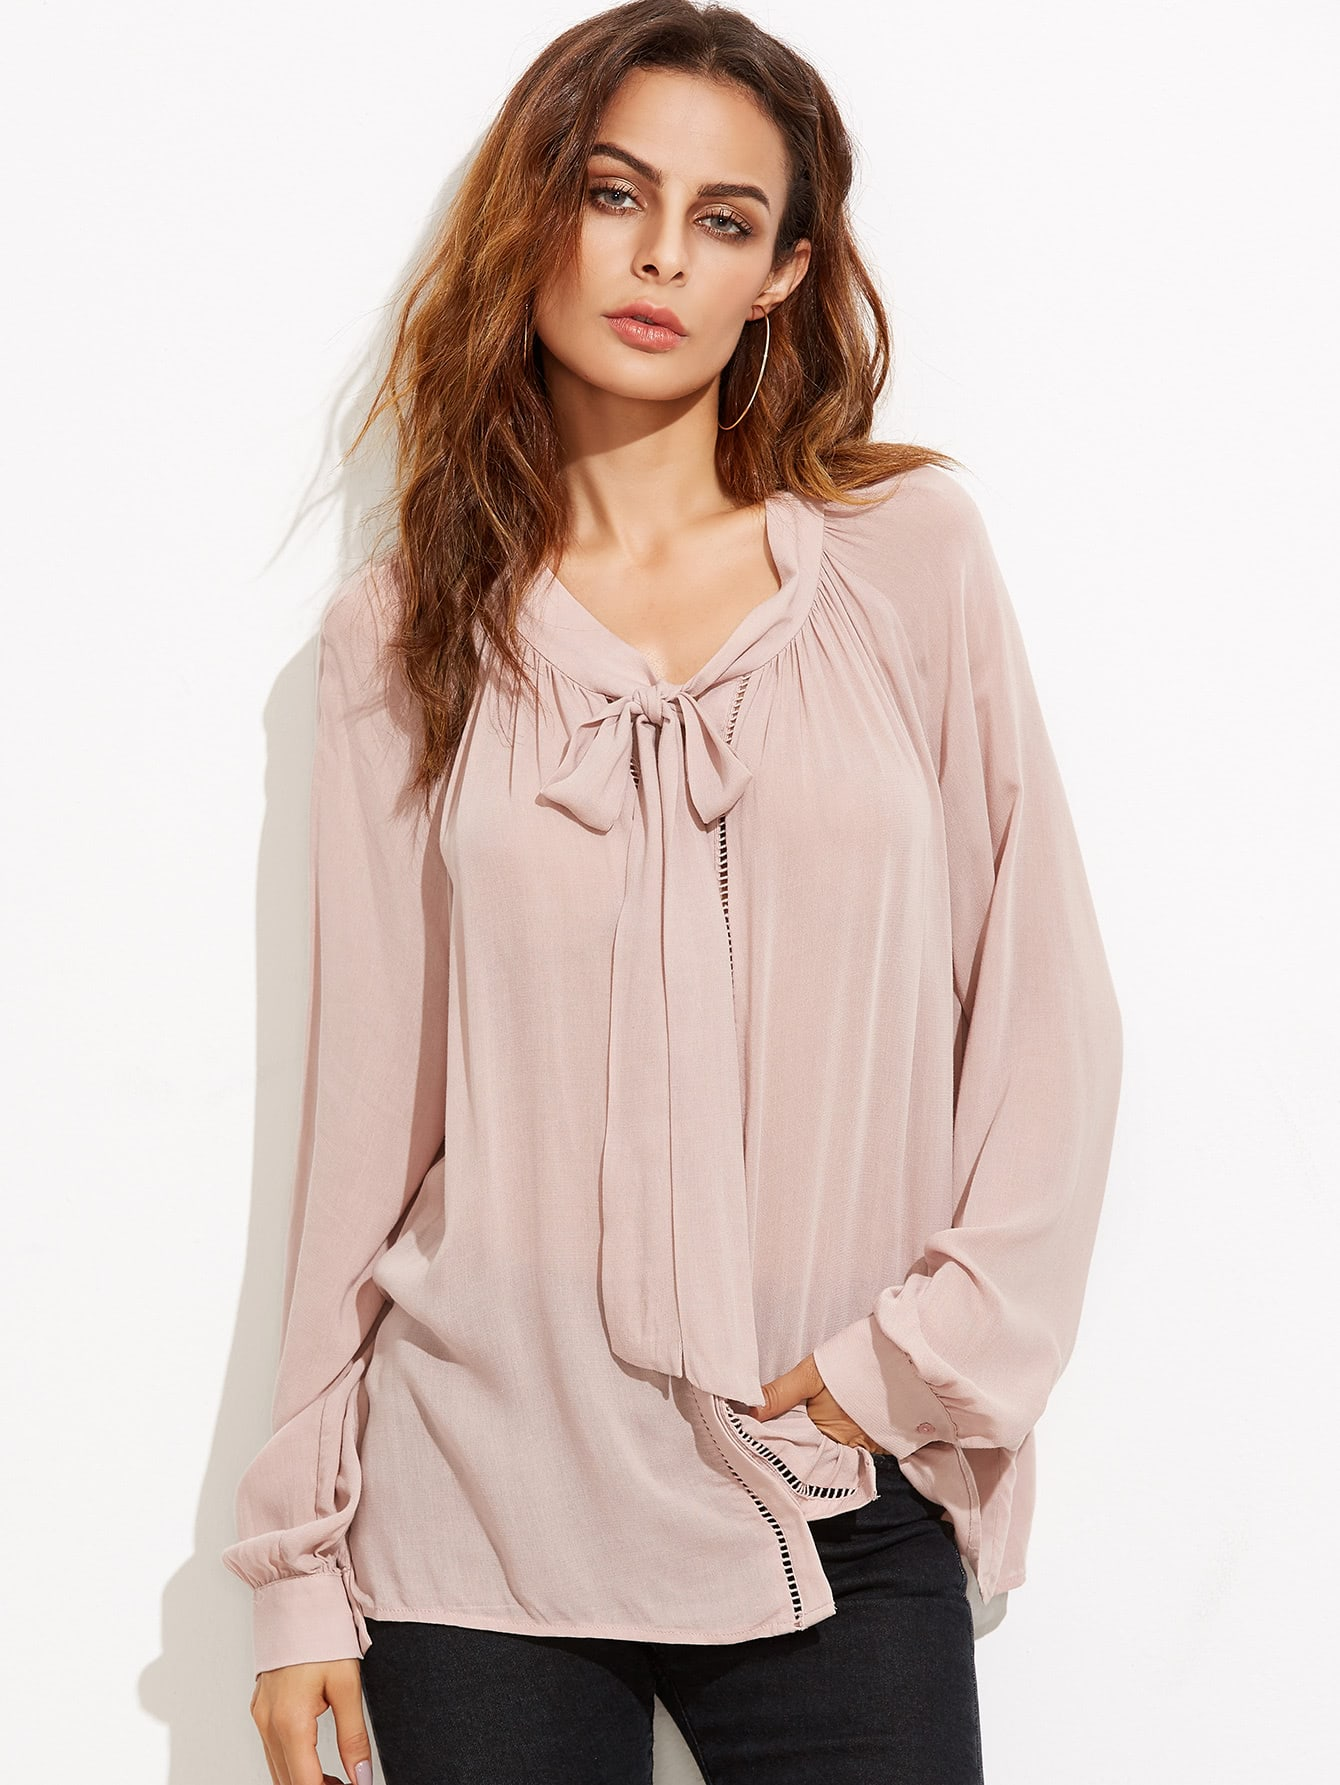 Pink Tie Neck Blouse 11